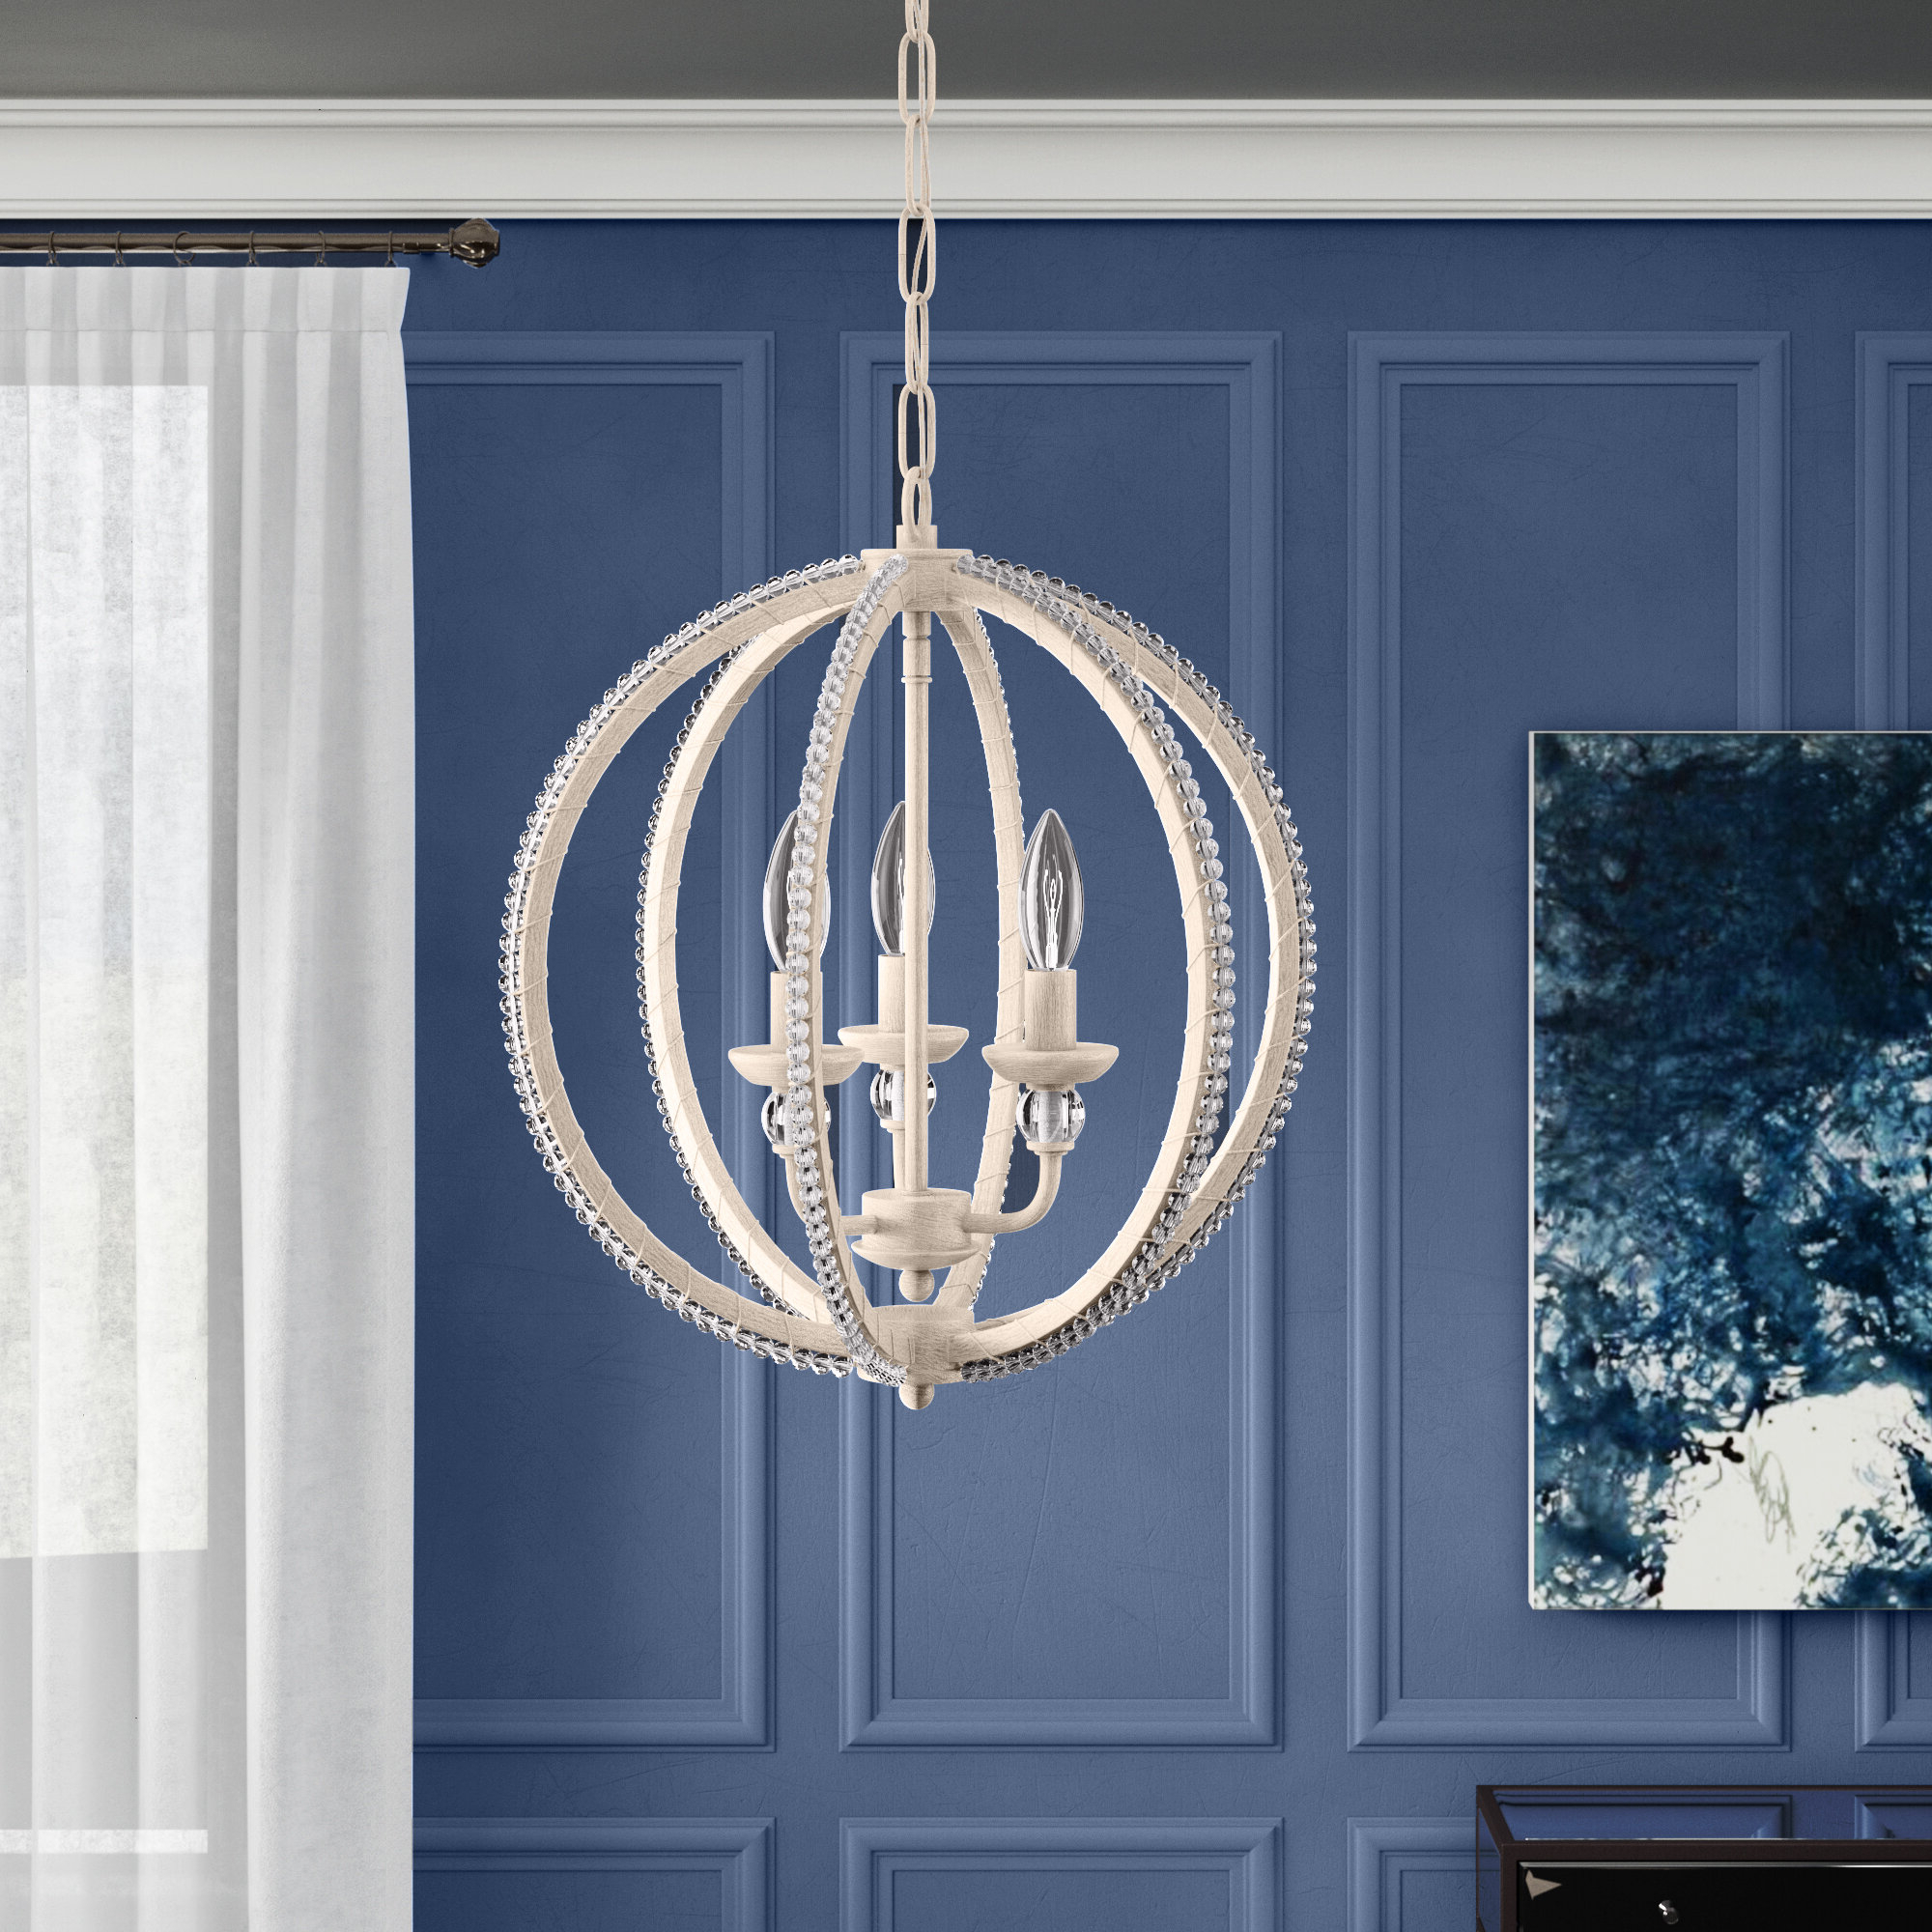 Widely Used La Barge 3 Light Globe Chandeliers Inside Clarice 3 Light Globe Chandelier (View 16 of 25)